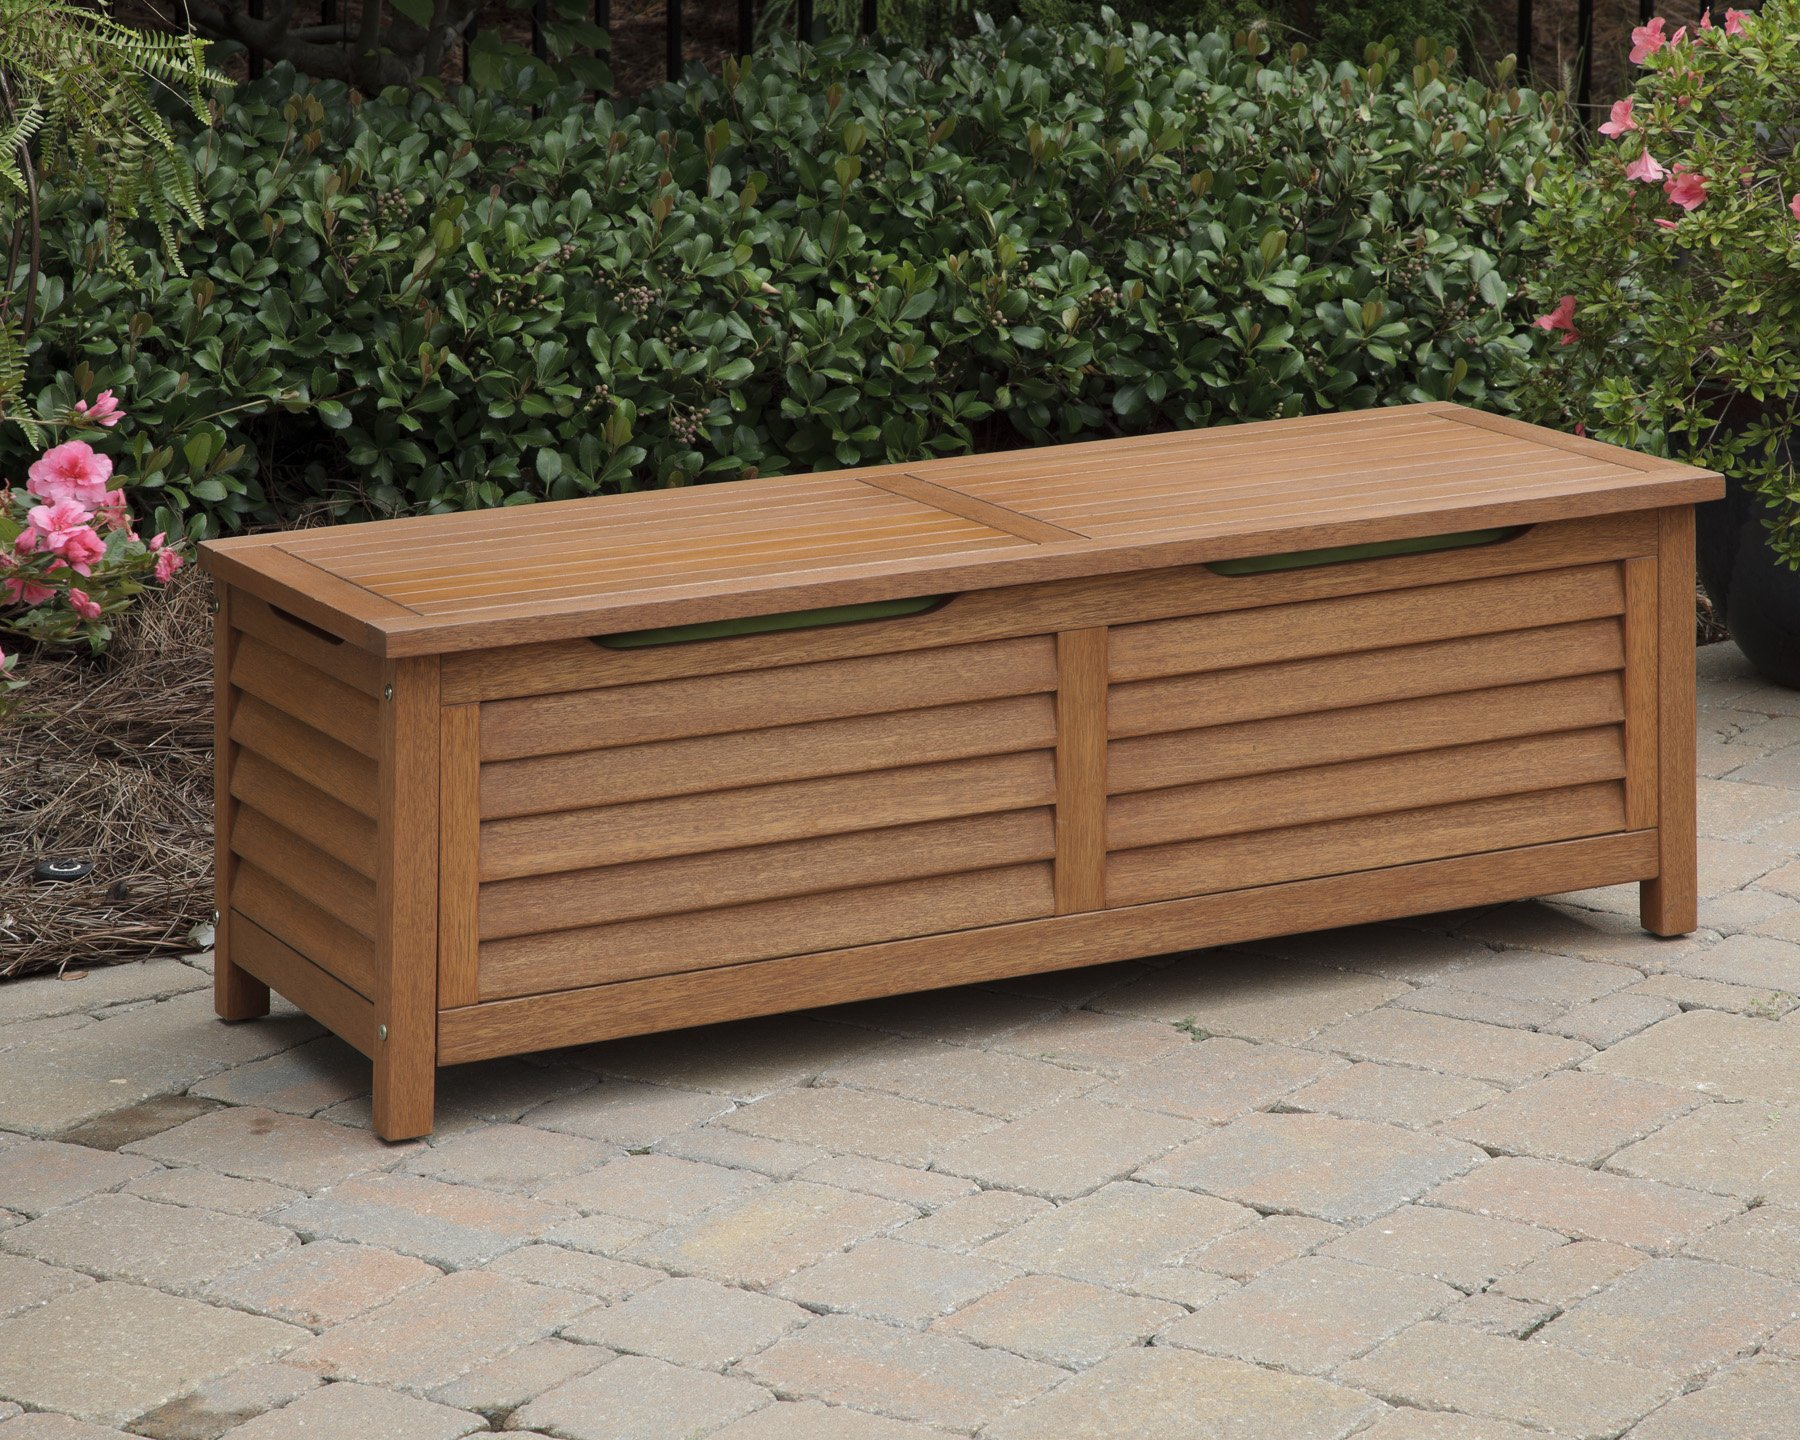 Home Styles 5661-25 Montego Bay Deck Box, Eucalyptus Finish by Home Styles